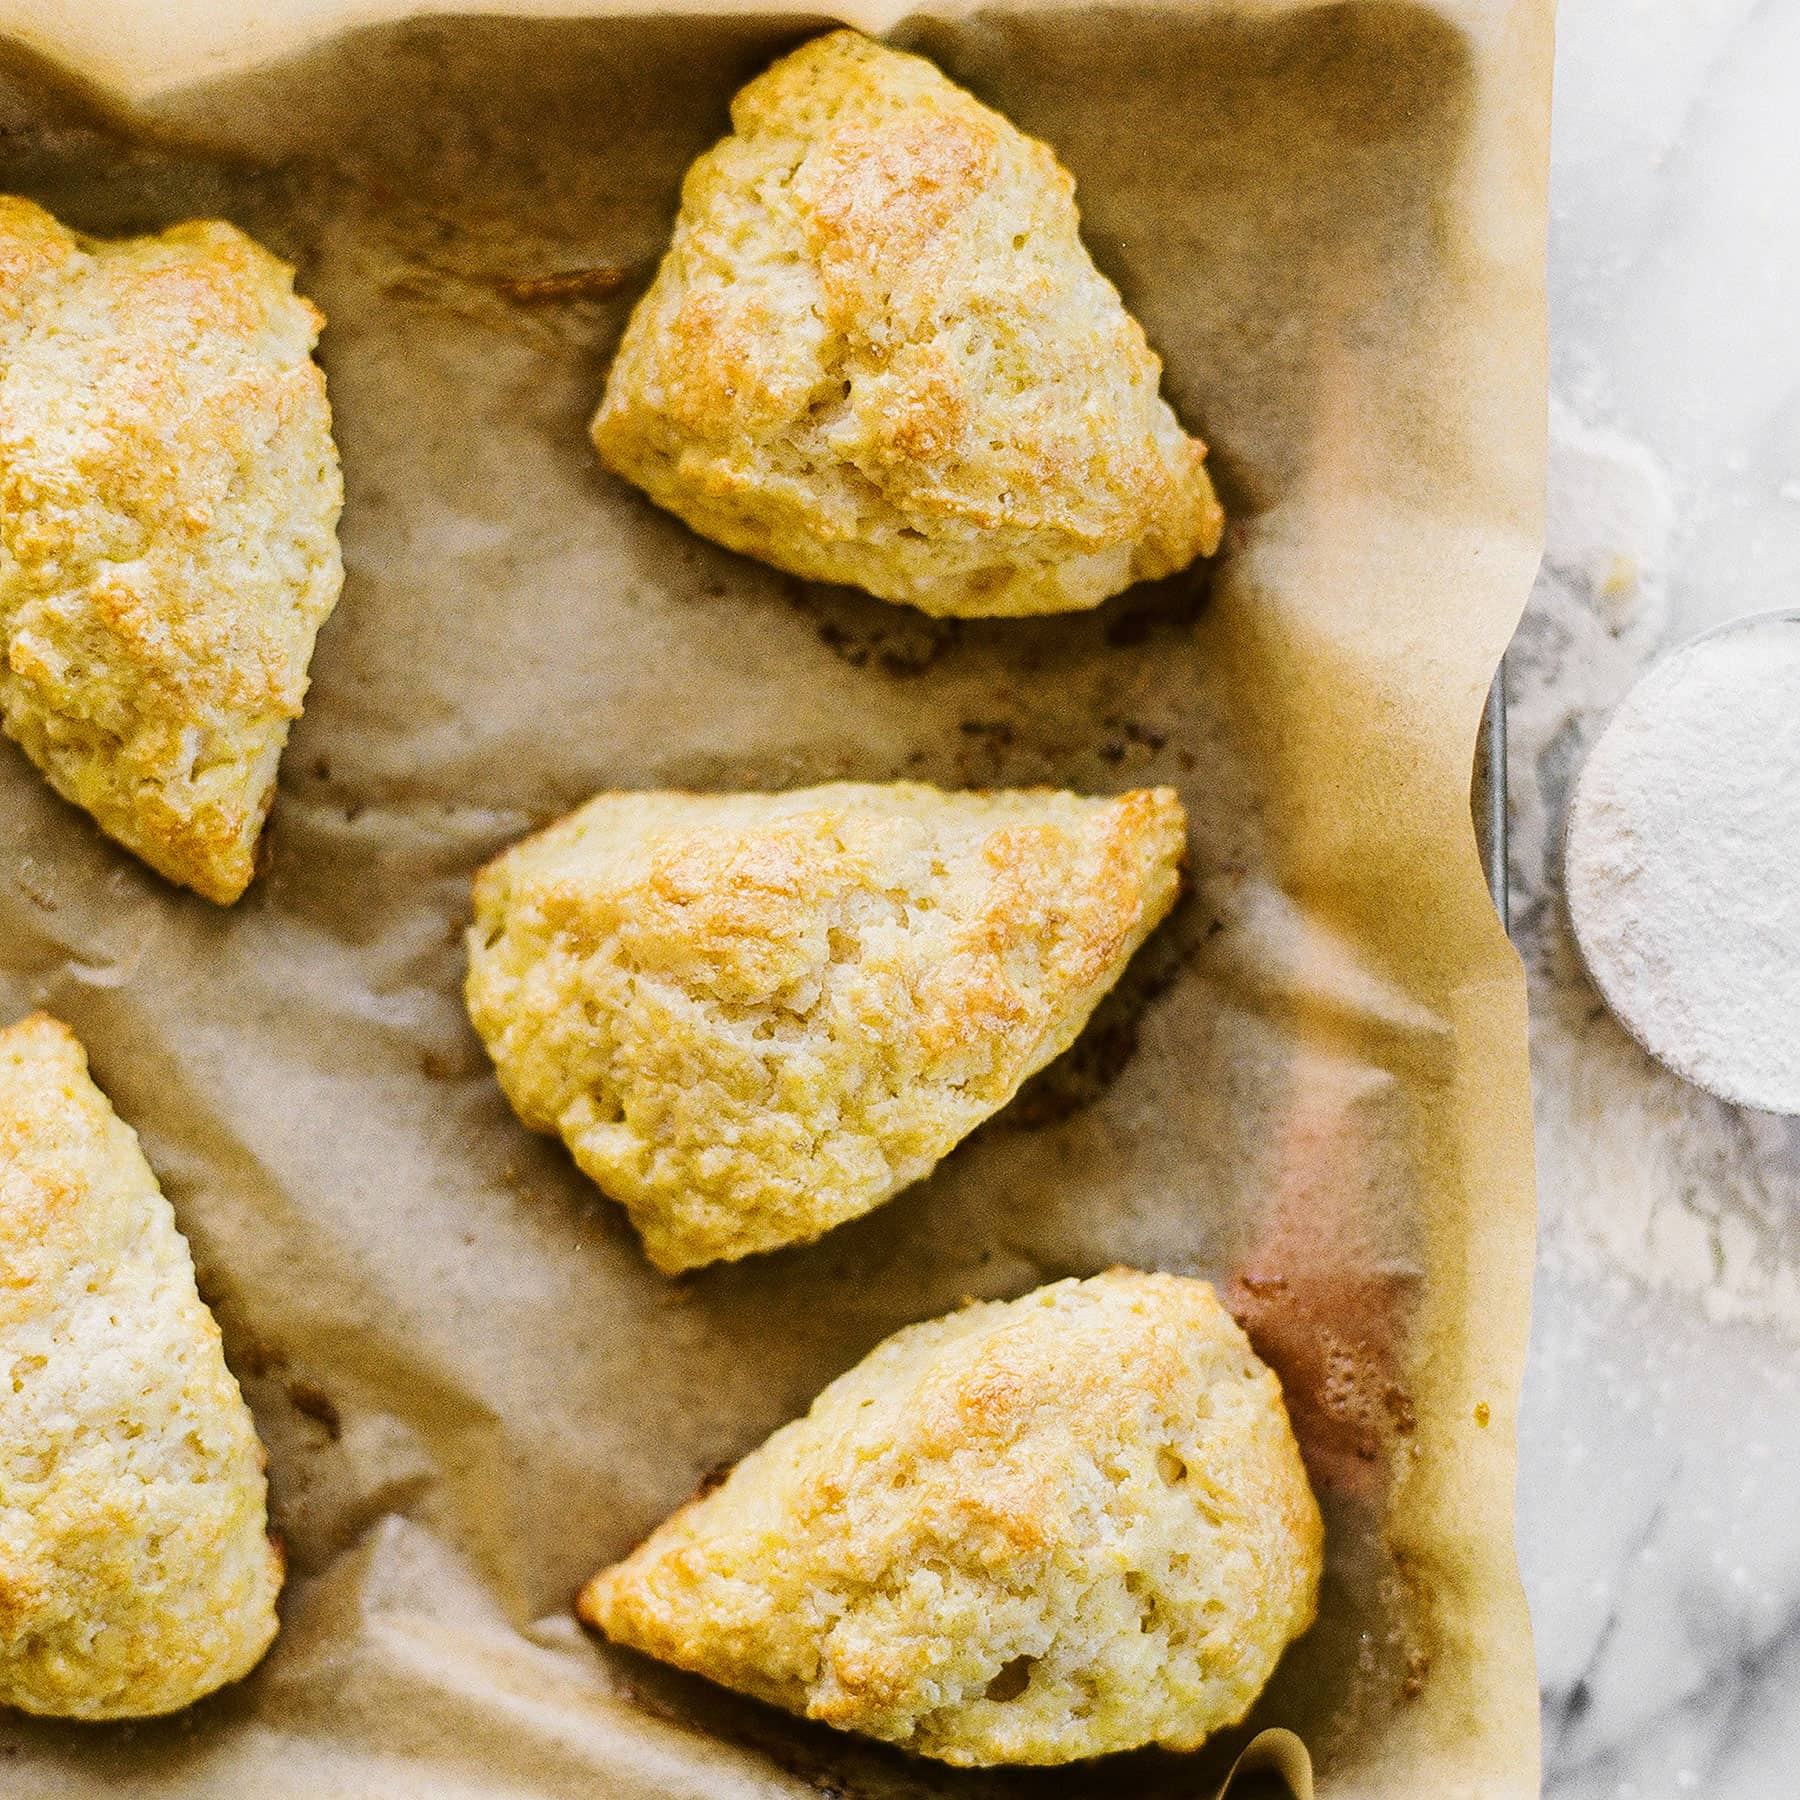 How To Make A Two Story Living Room Cozy: How To Make Perfect Scones